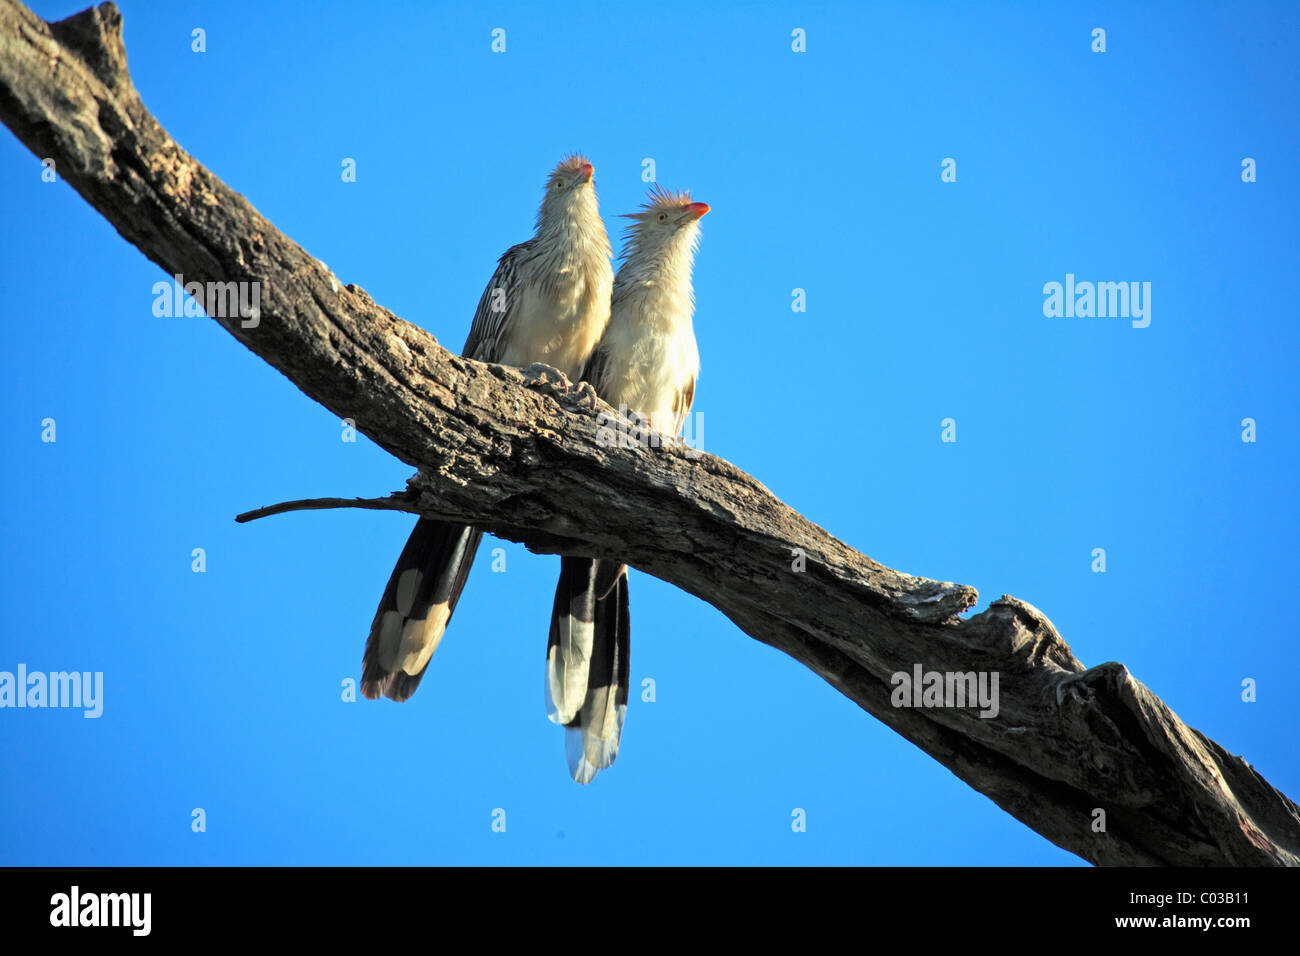 Guira Cuckoo (Guira Guira), adult birds on a branch, Pantanal, Brazil, South America - Stock Image